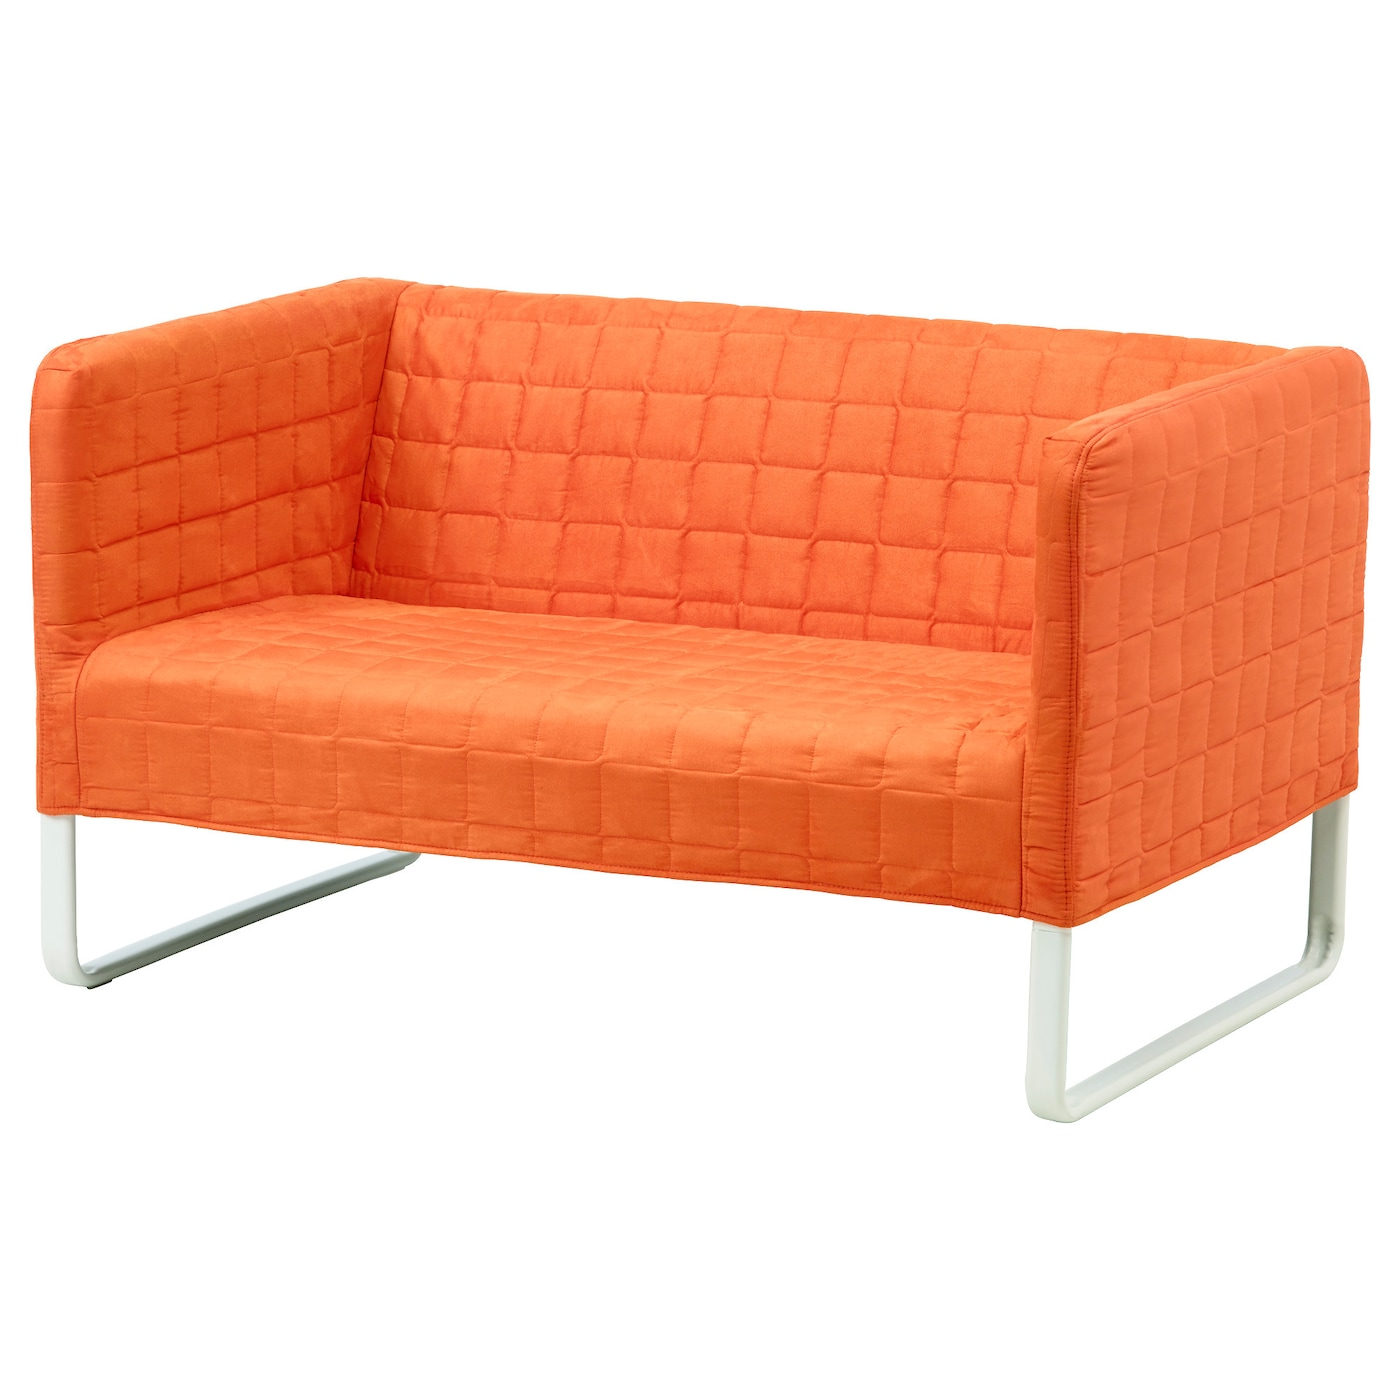 Sofabett ikea  KNOPPARP 2-seat sofa Orange - IKEA